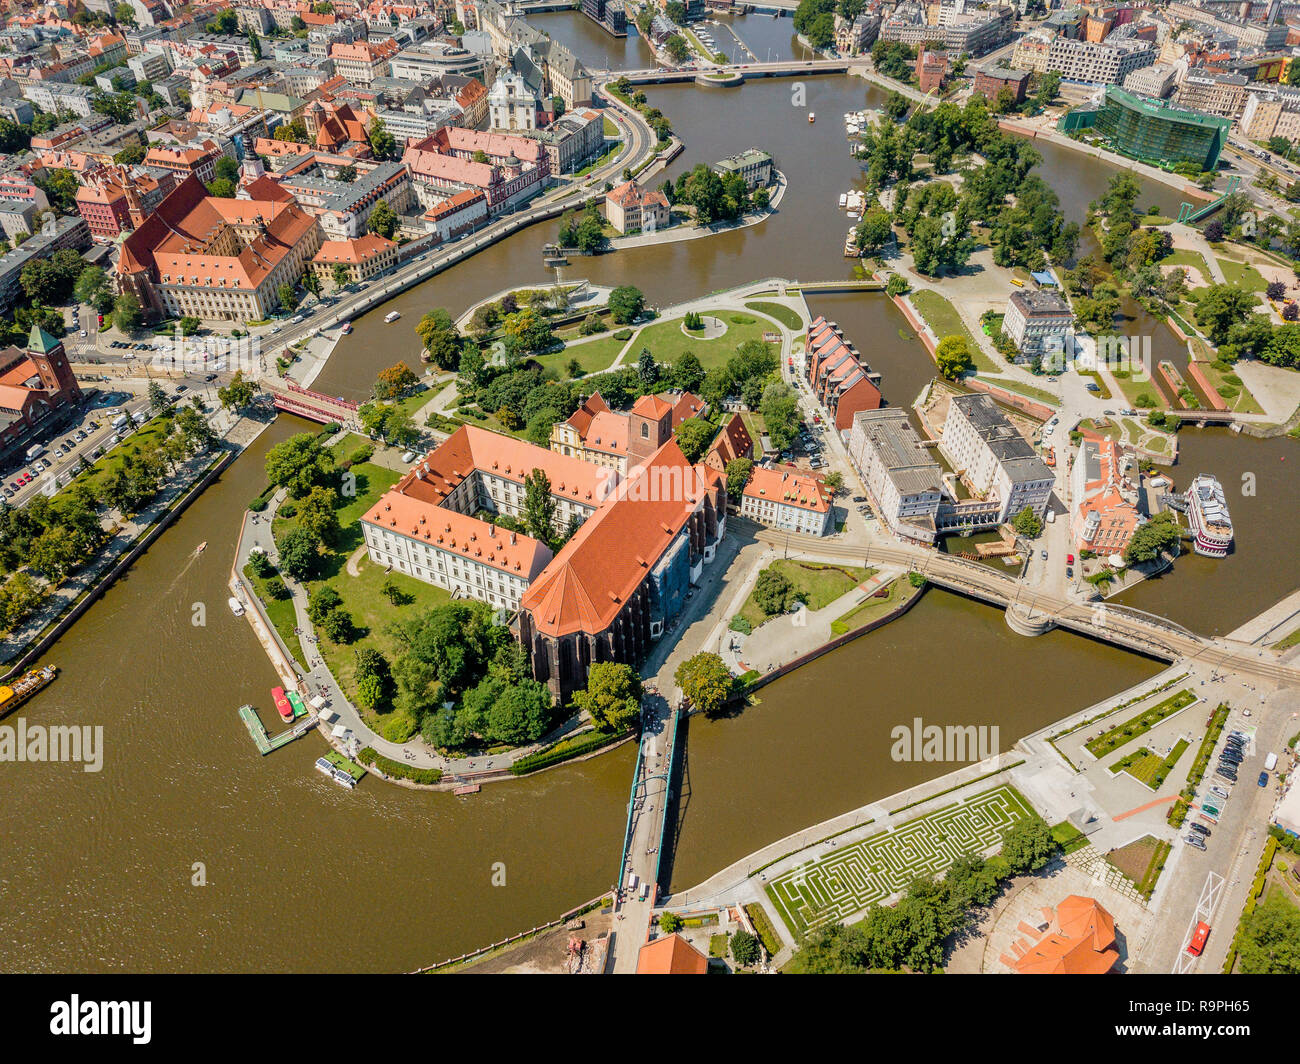 Aerial view of the oldest, historic part of Wroclaw located mostly on the islands, Poland Stock Photo